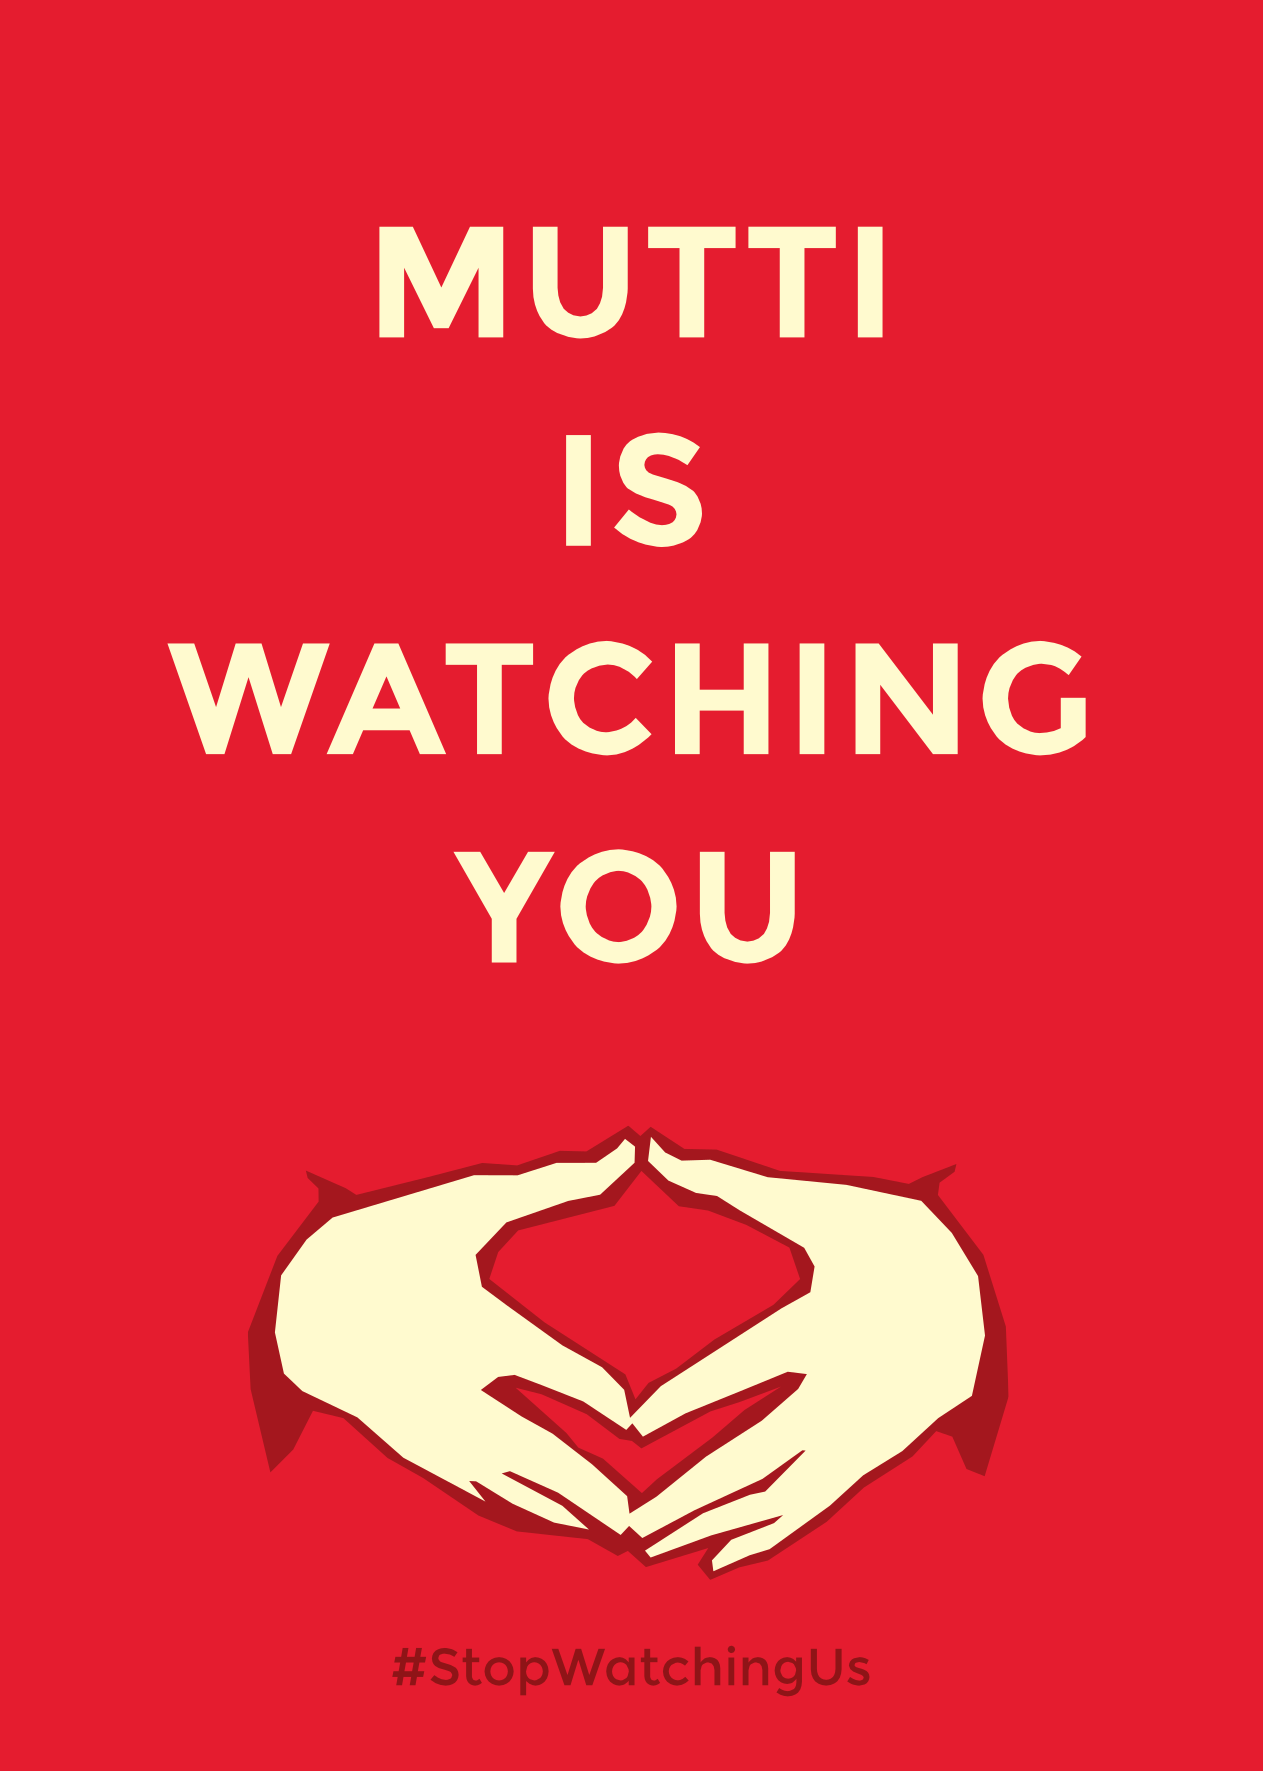 Mutti is watching you plakat